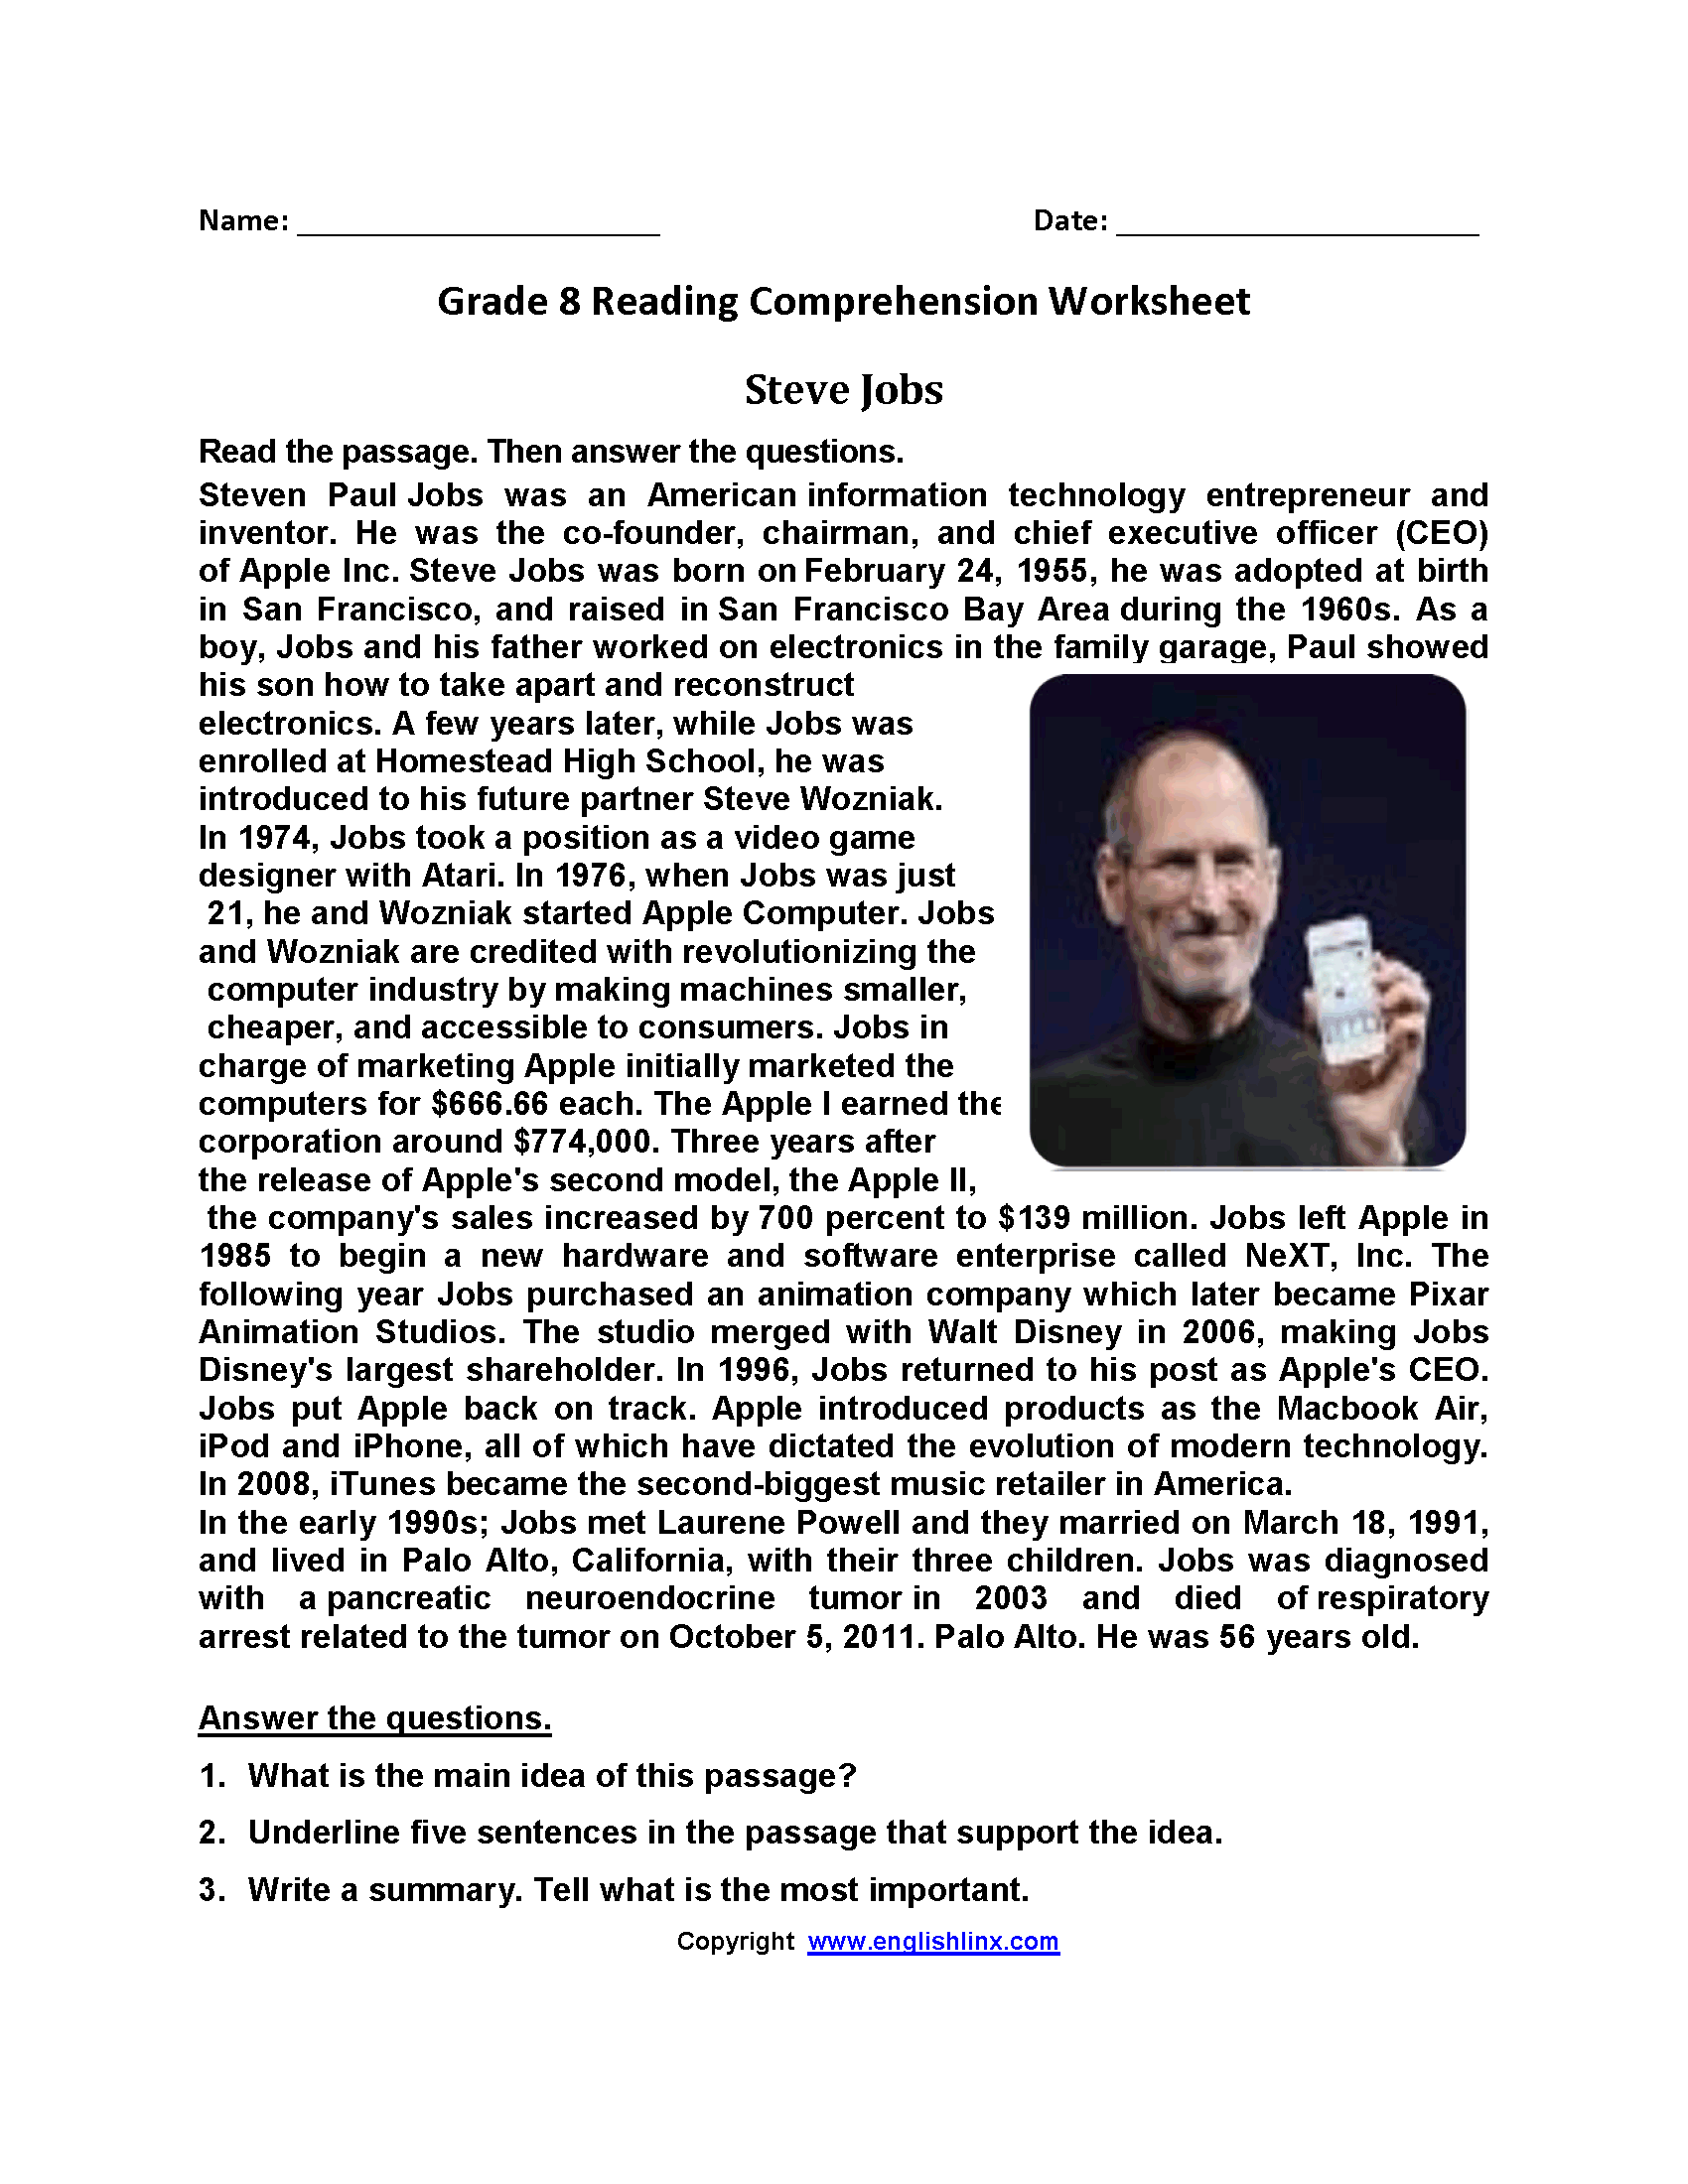 - Steve Jobs Eighth Grade Reading Worksheets Reading Comprehension